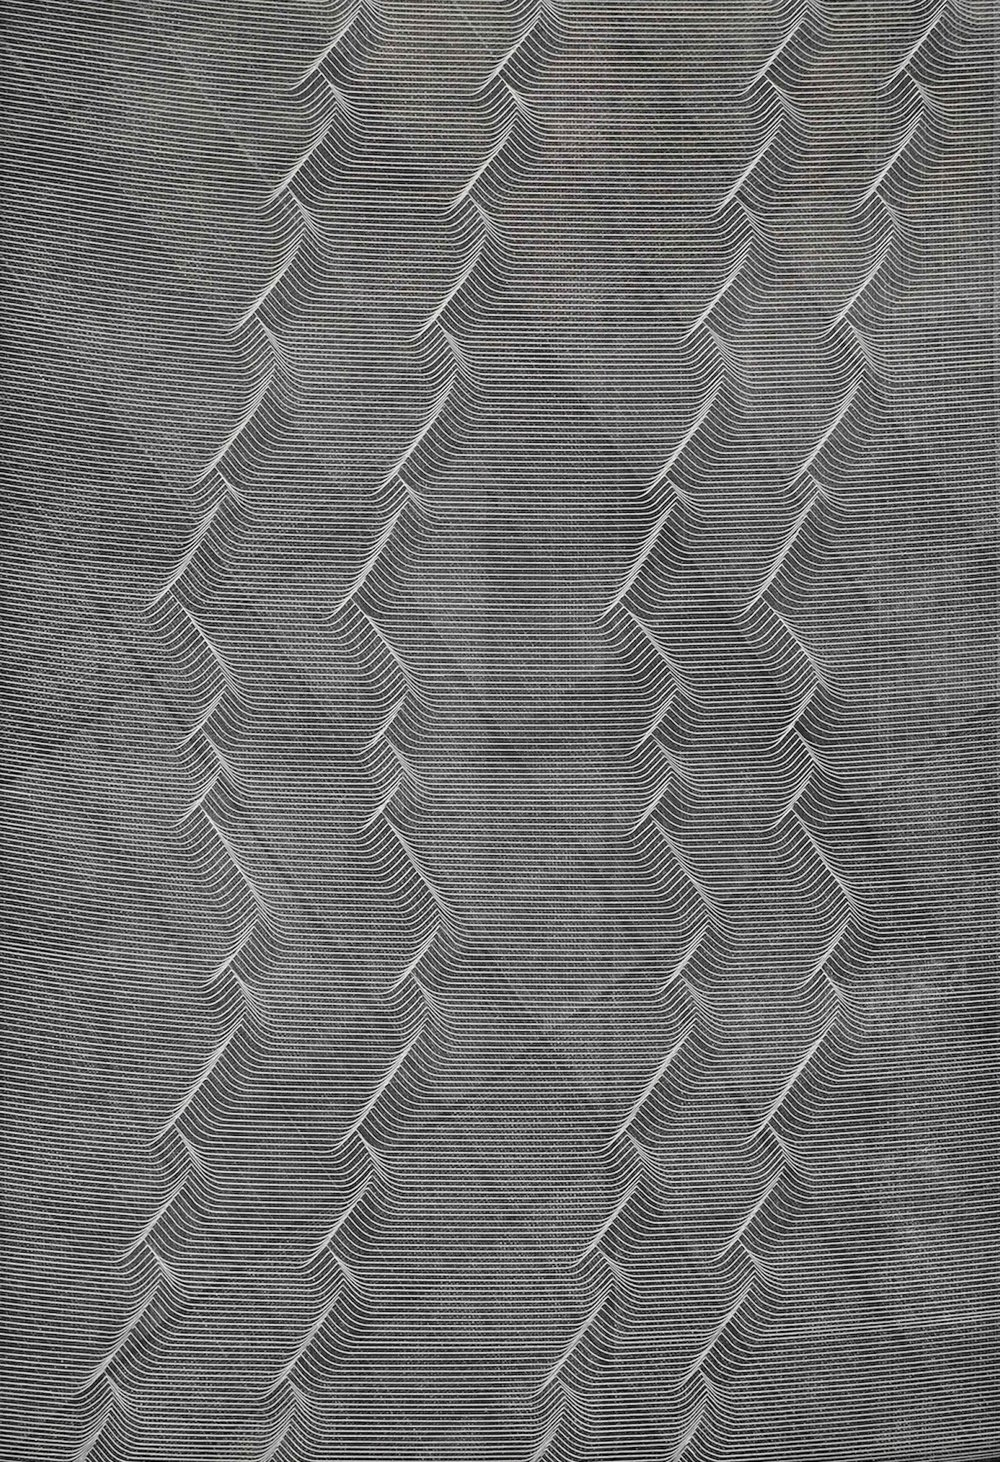 Long Ending   Scratches and Casein Paint on Gesso Panel  56 x 42 cm